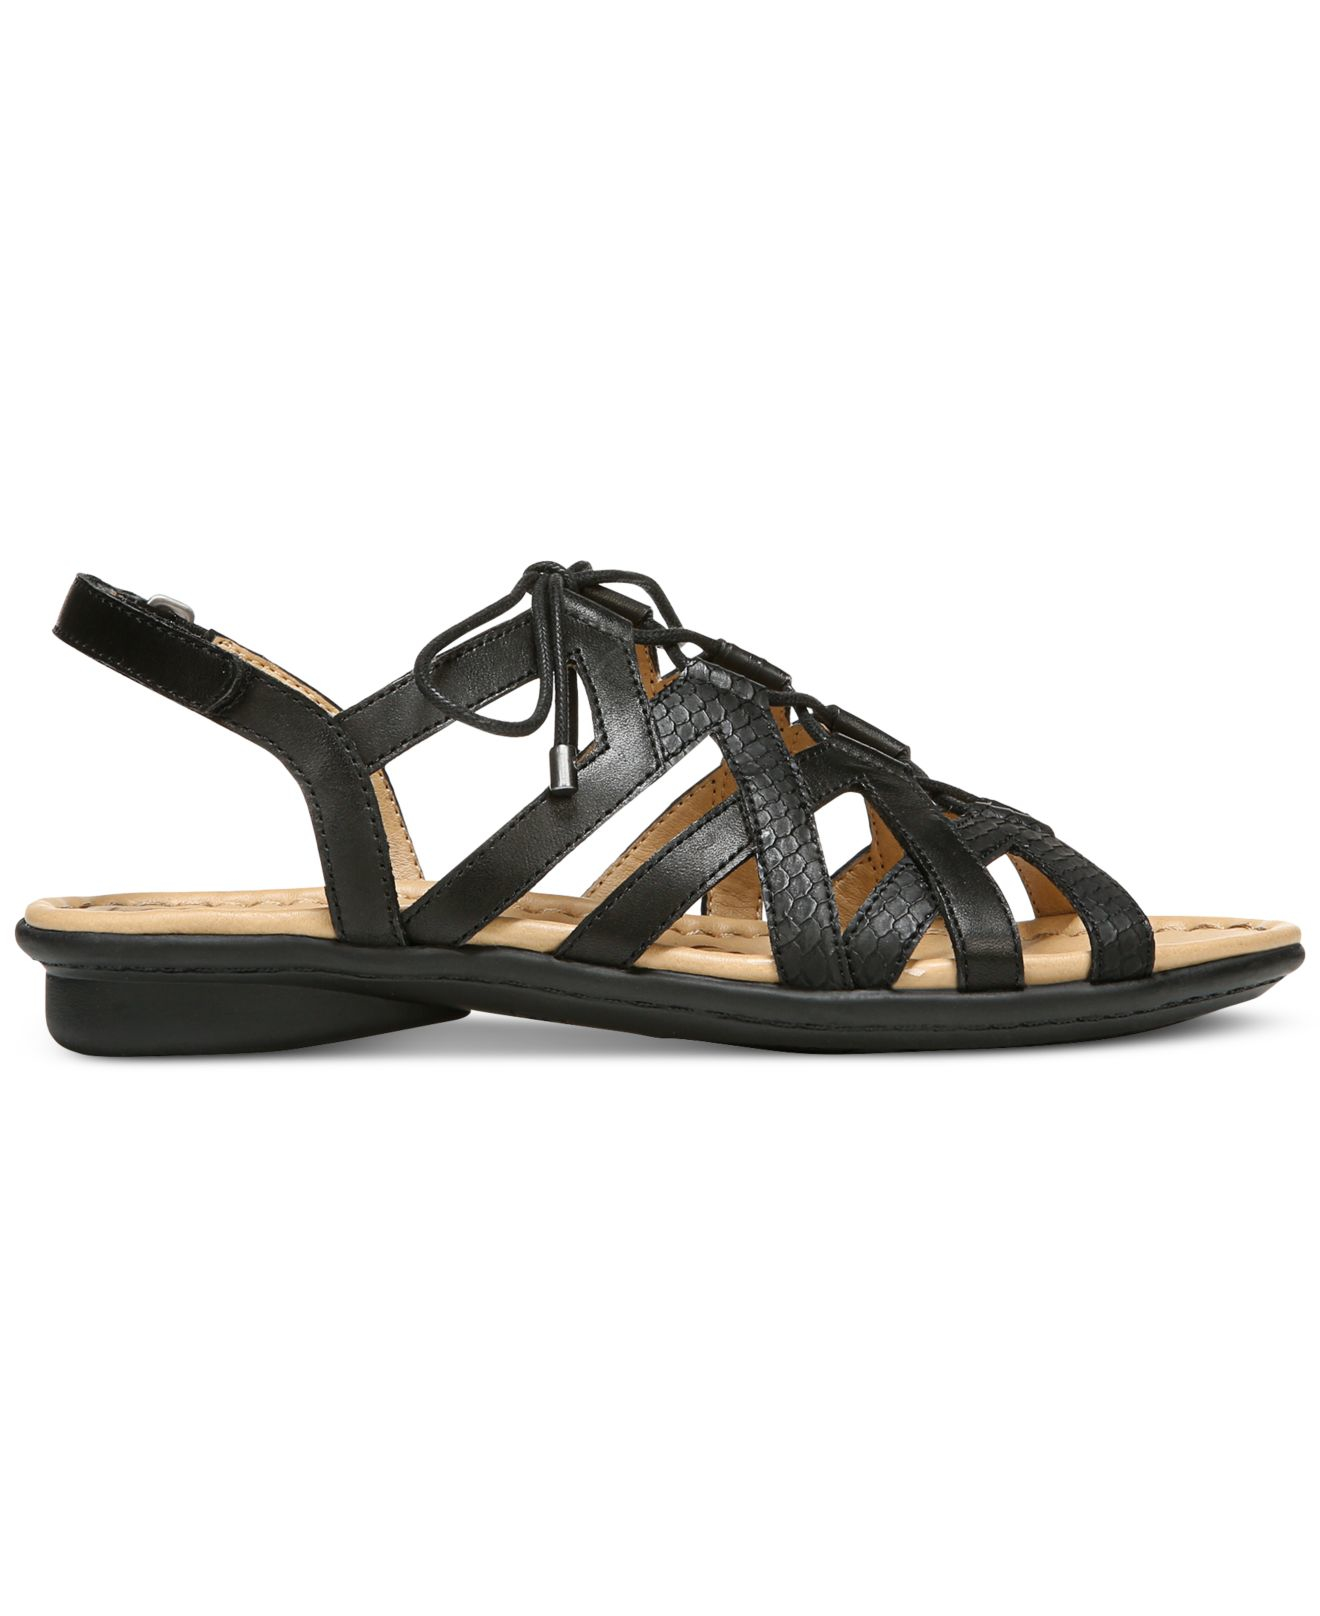 Naturalizer Black Sandals with FREE Shipping & Exchanges, and a % price guarantee. Choose from a huge selection of Naturalizer Black Sandals styles.